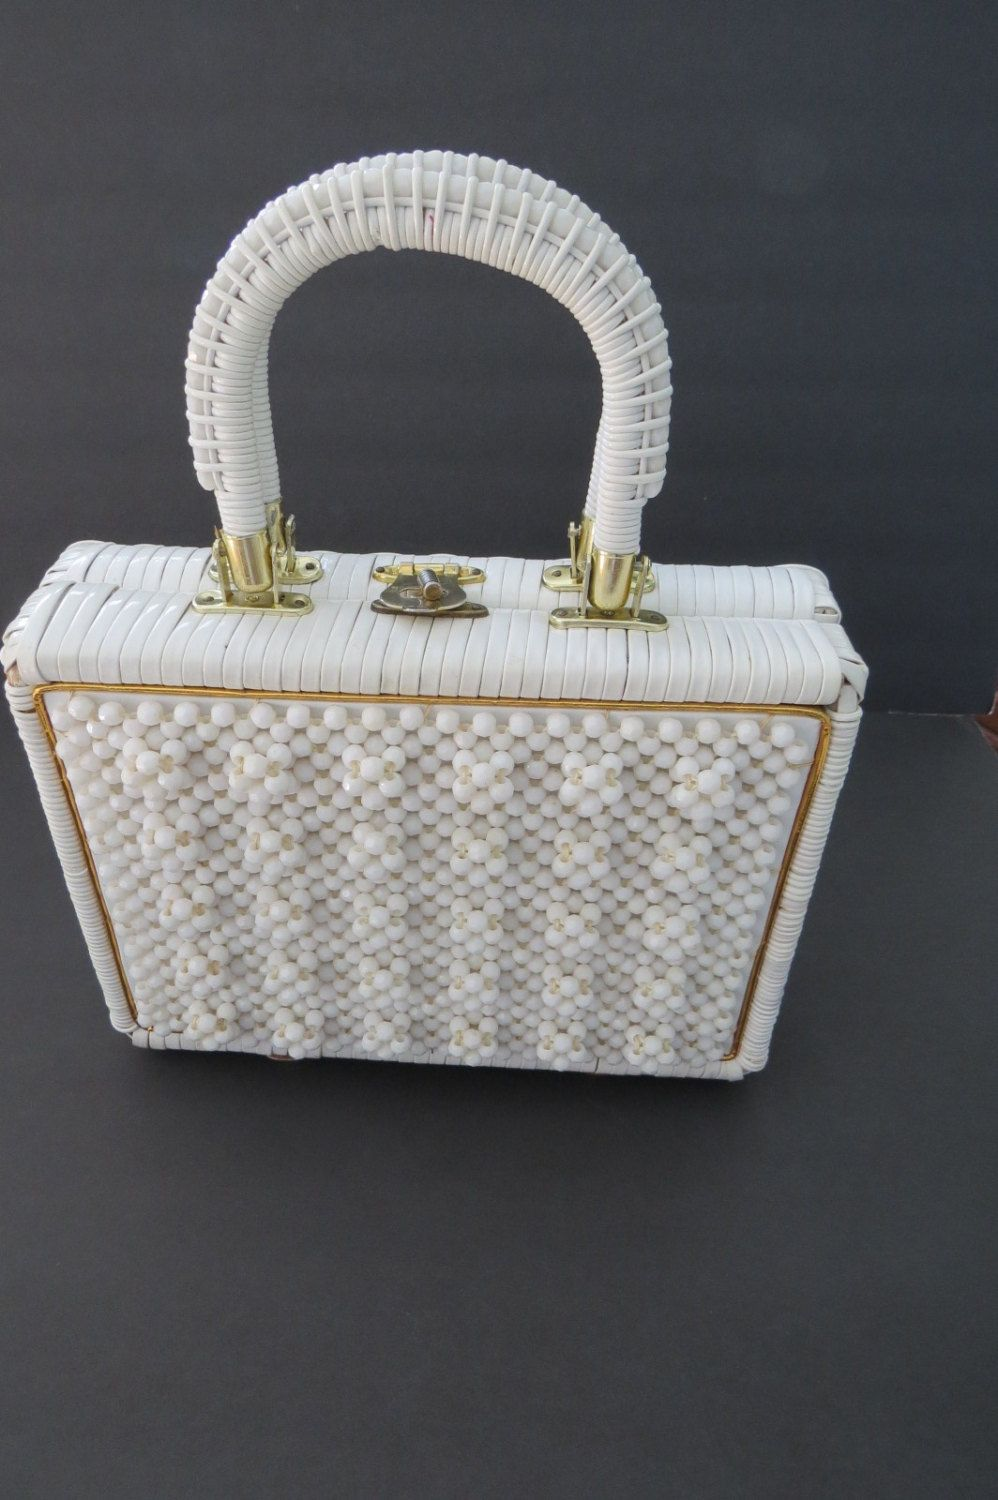 Vintage white beaded wicker handbag 1950s rattan purse made in vintage handbag purse white beaded vinyl wicker made in hong kong summer fashions vogue gift mothers day by shabbyshopgirls on etsy negle Image collections